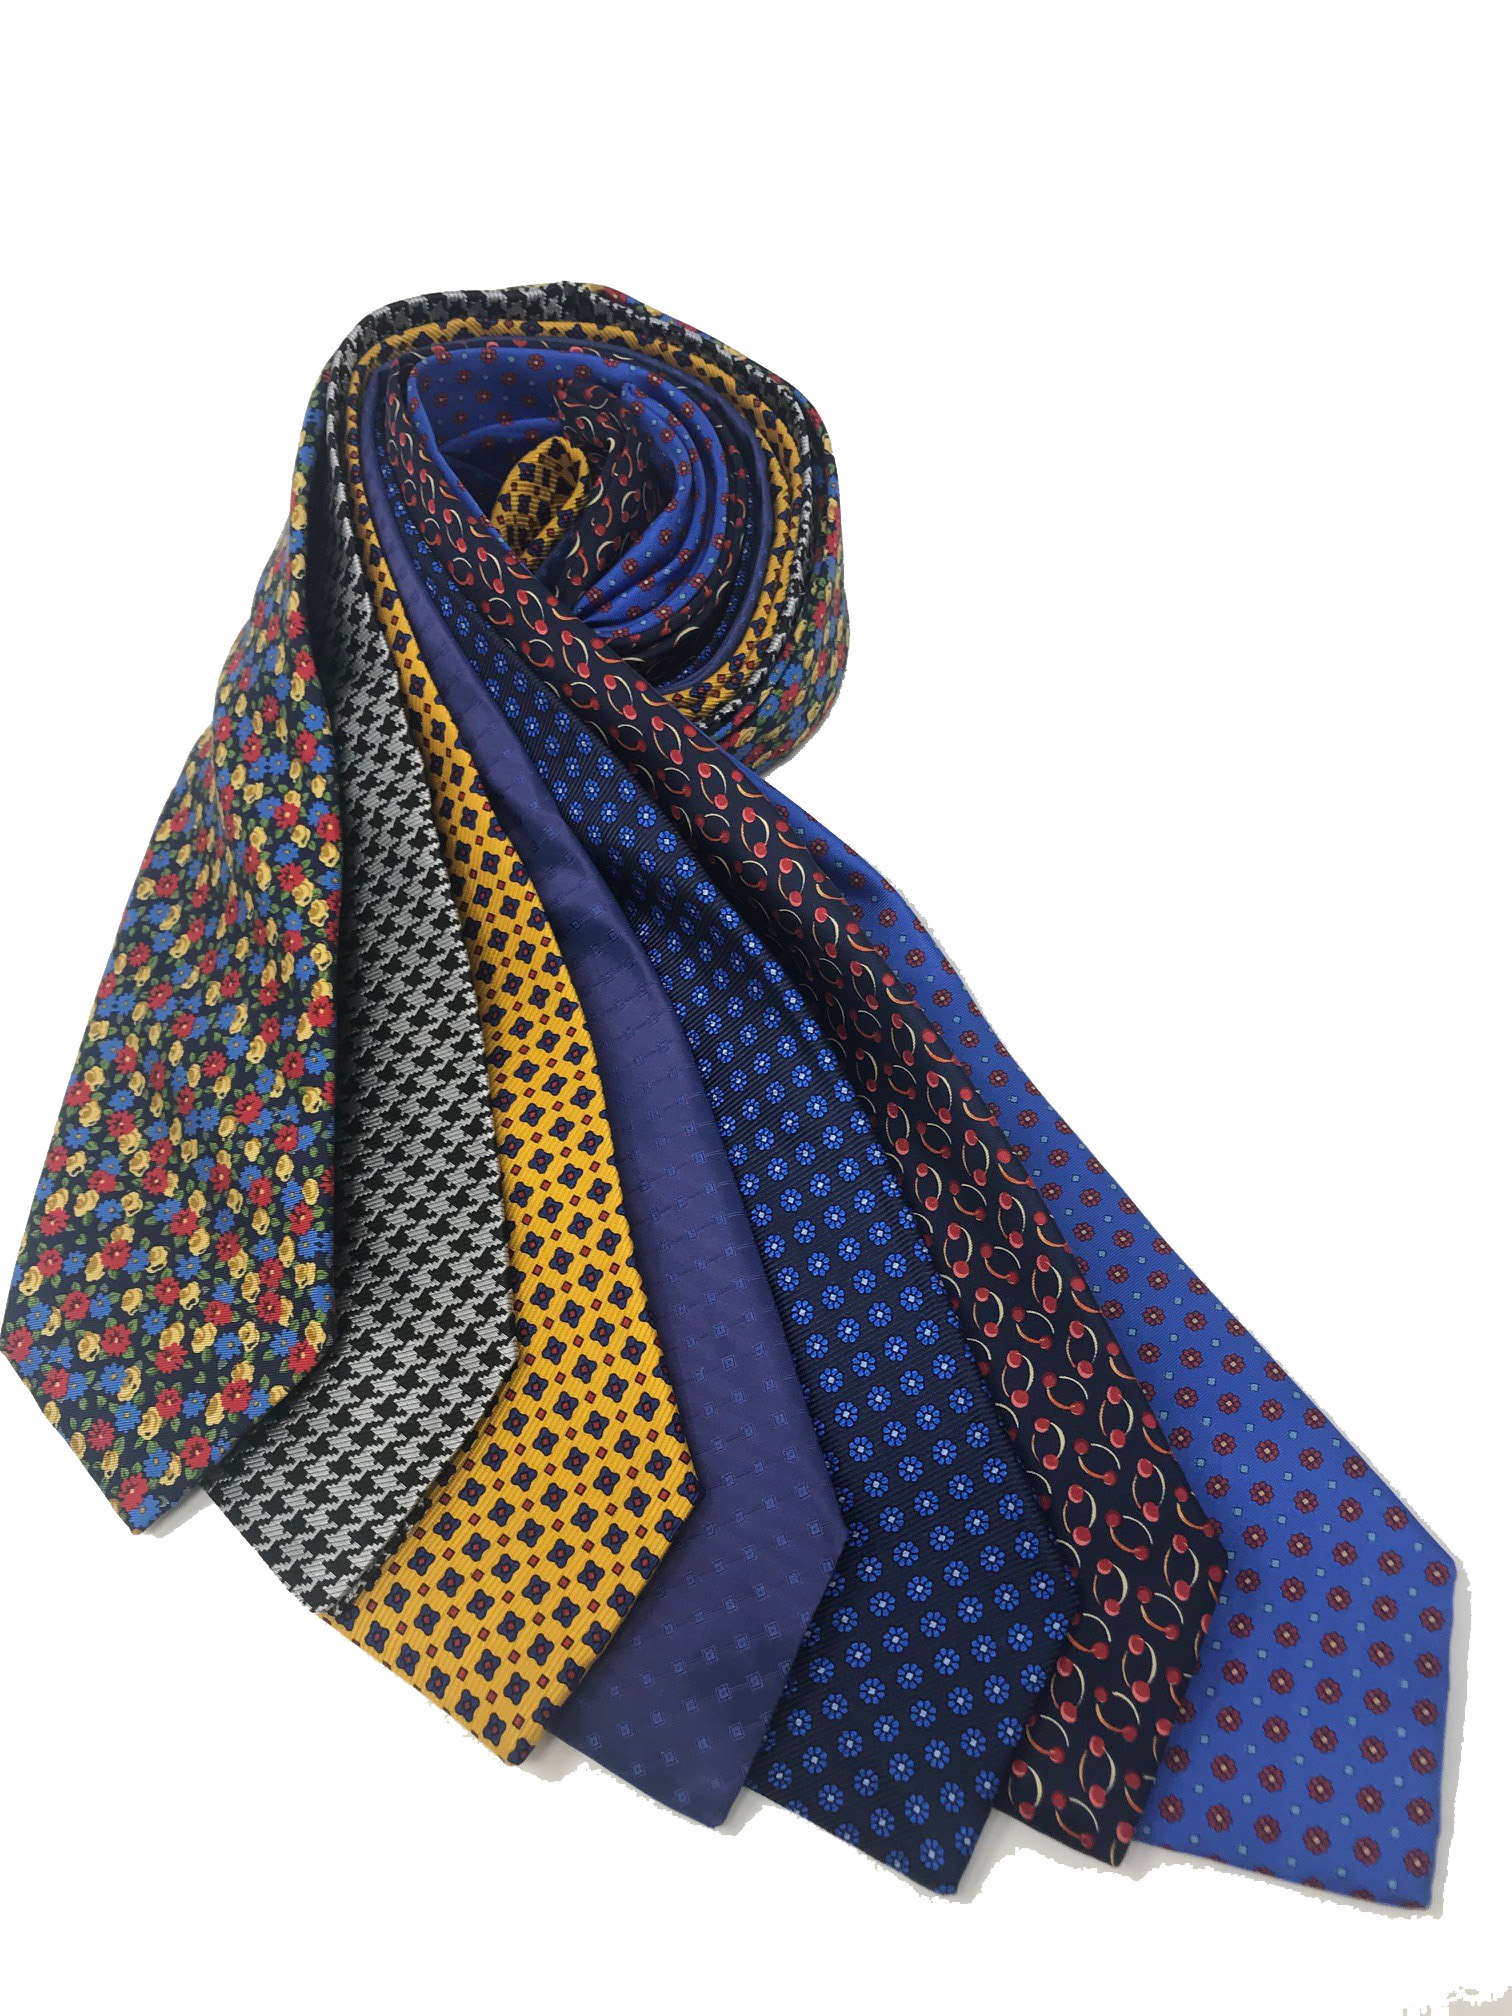 Cavenagh of London 7Piece 100% Pure Silk Ties Made in UK (717D)RRP£139.99